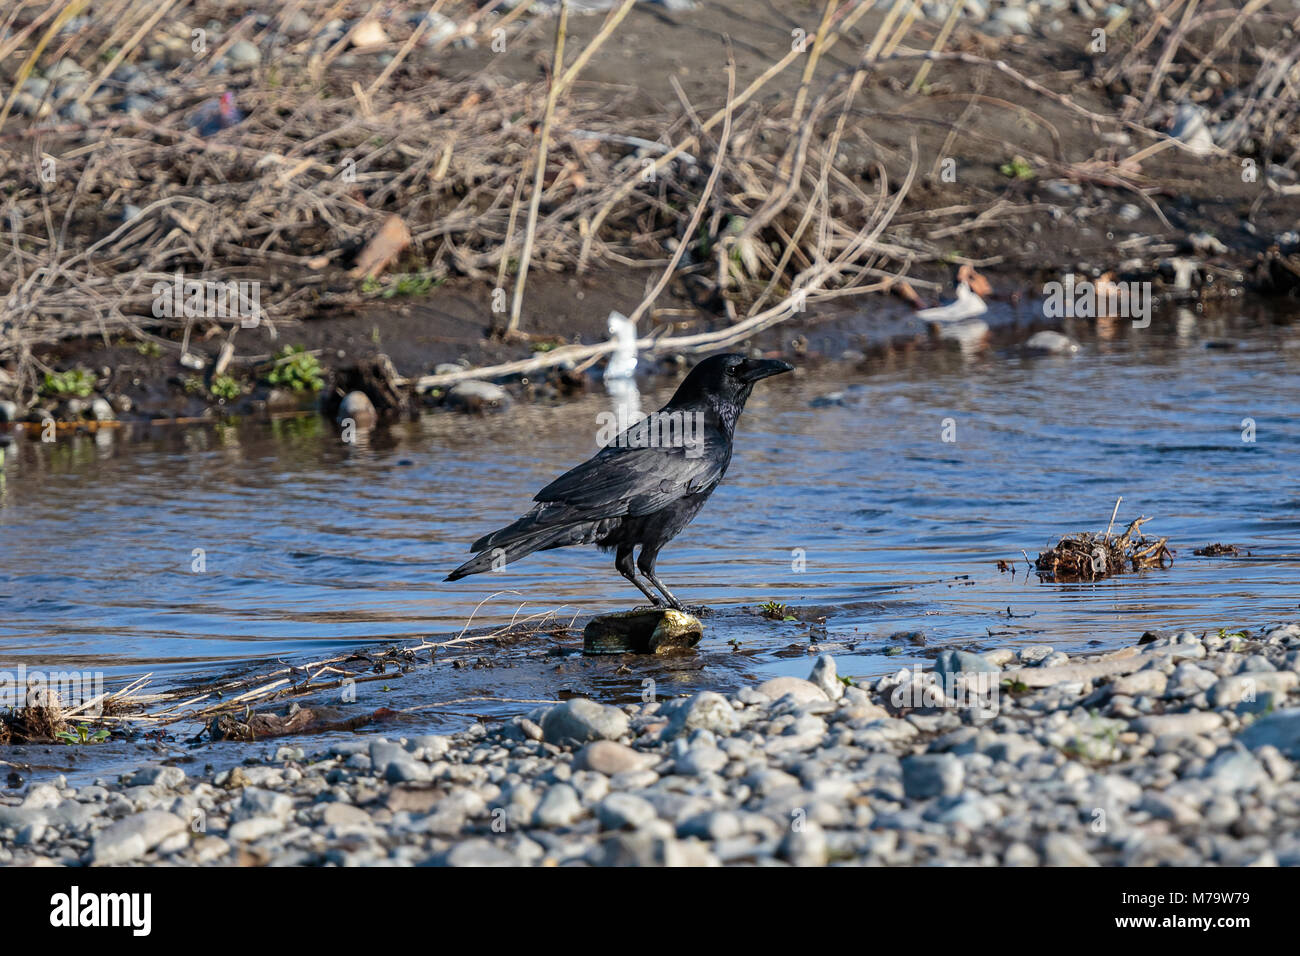 A jet black raven stands beside a small inlet on the shores of the Sagami River in Japan. - Stock Image